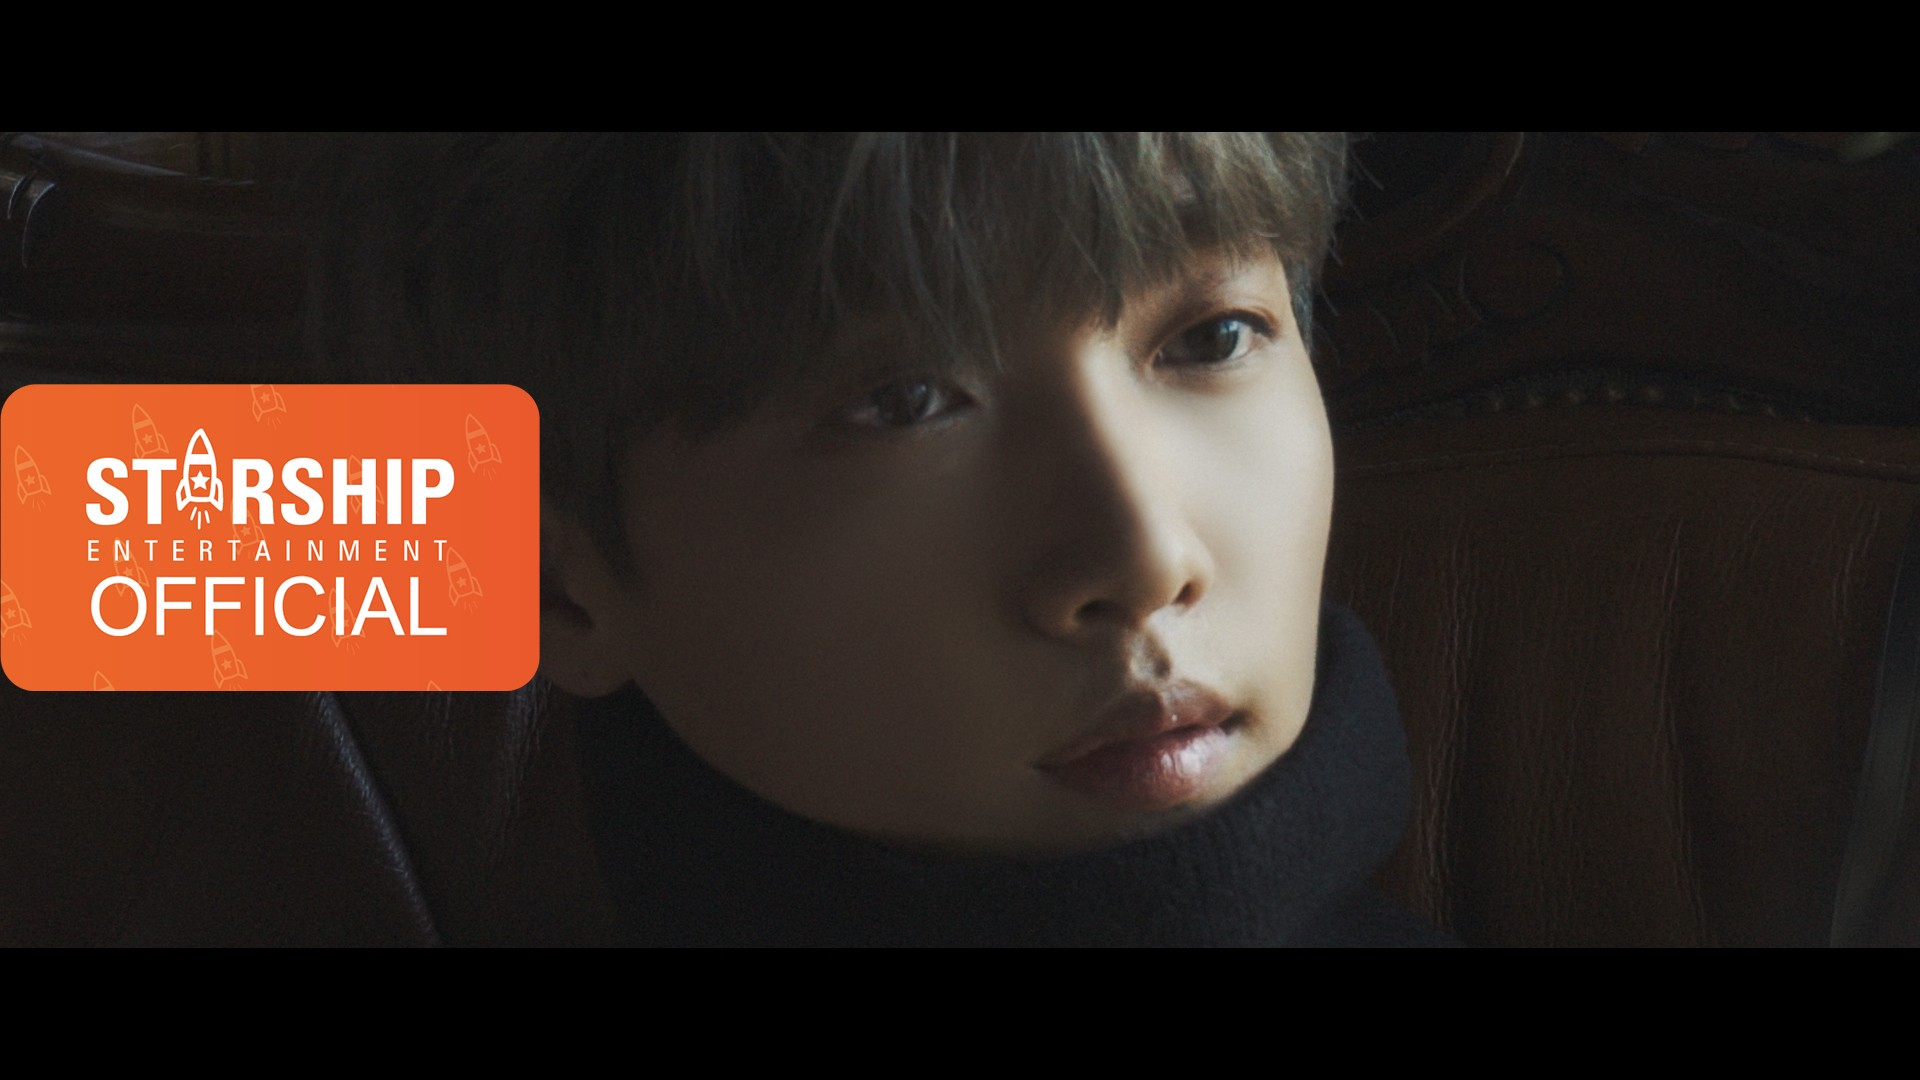 [WINTER FILM] 정세운(JEONG SEWOON) THE 1ST MINI ALBUM PART.2 [AFTER]